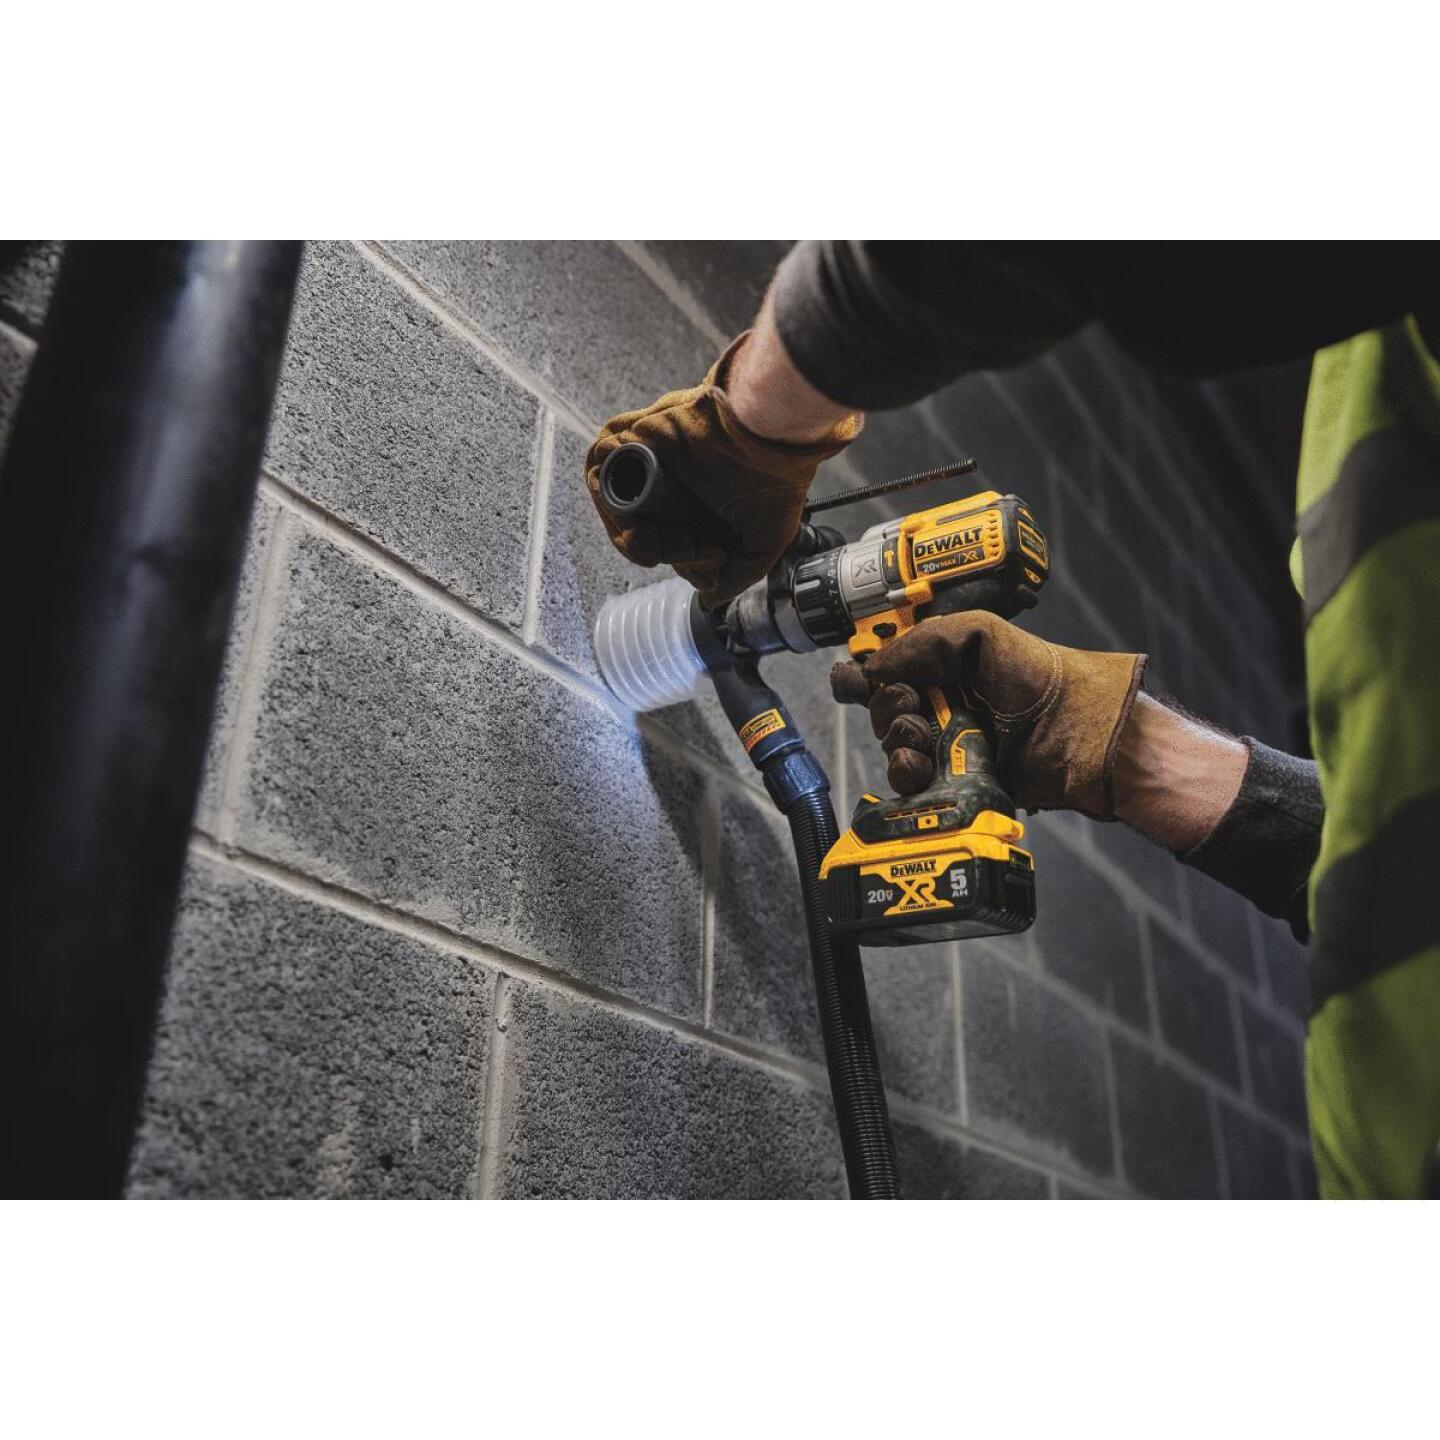 DeWalt 20 Volt MAX XR Lithium-Ion Brushless 1/2 In. 3-Speed Cordless Hammer Drill (Bare Tool) Image 2